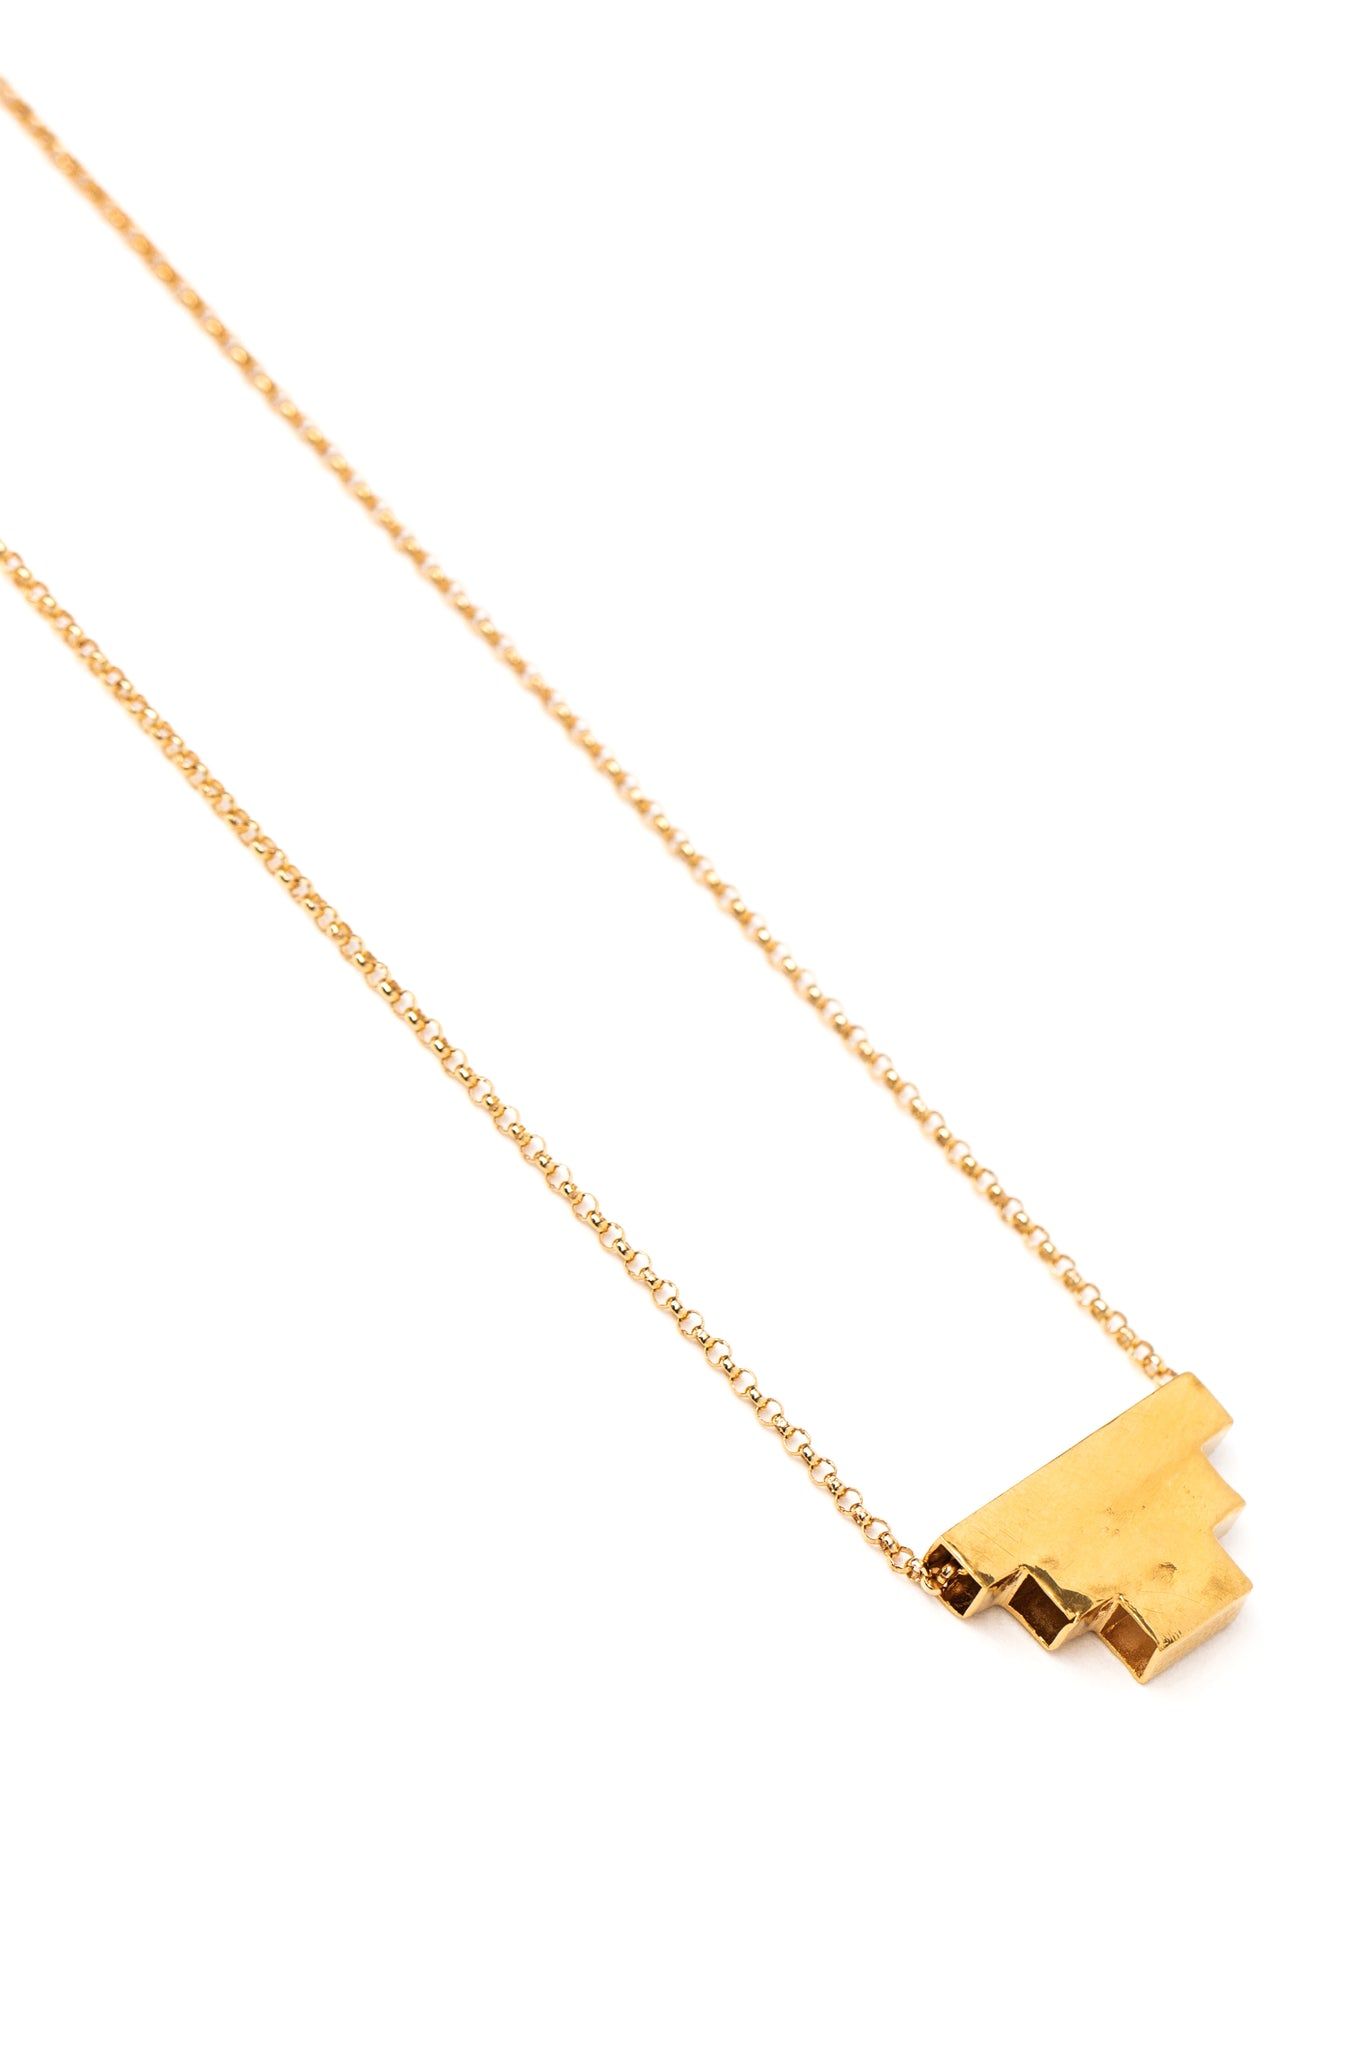 CAT LUCK Inverted Pyramid Necklace